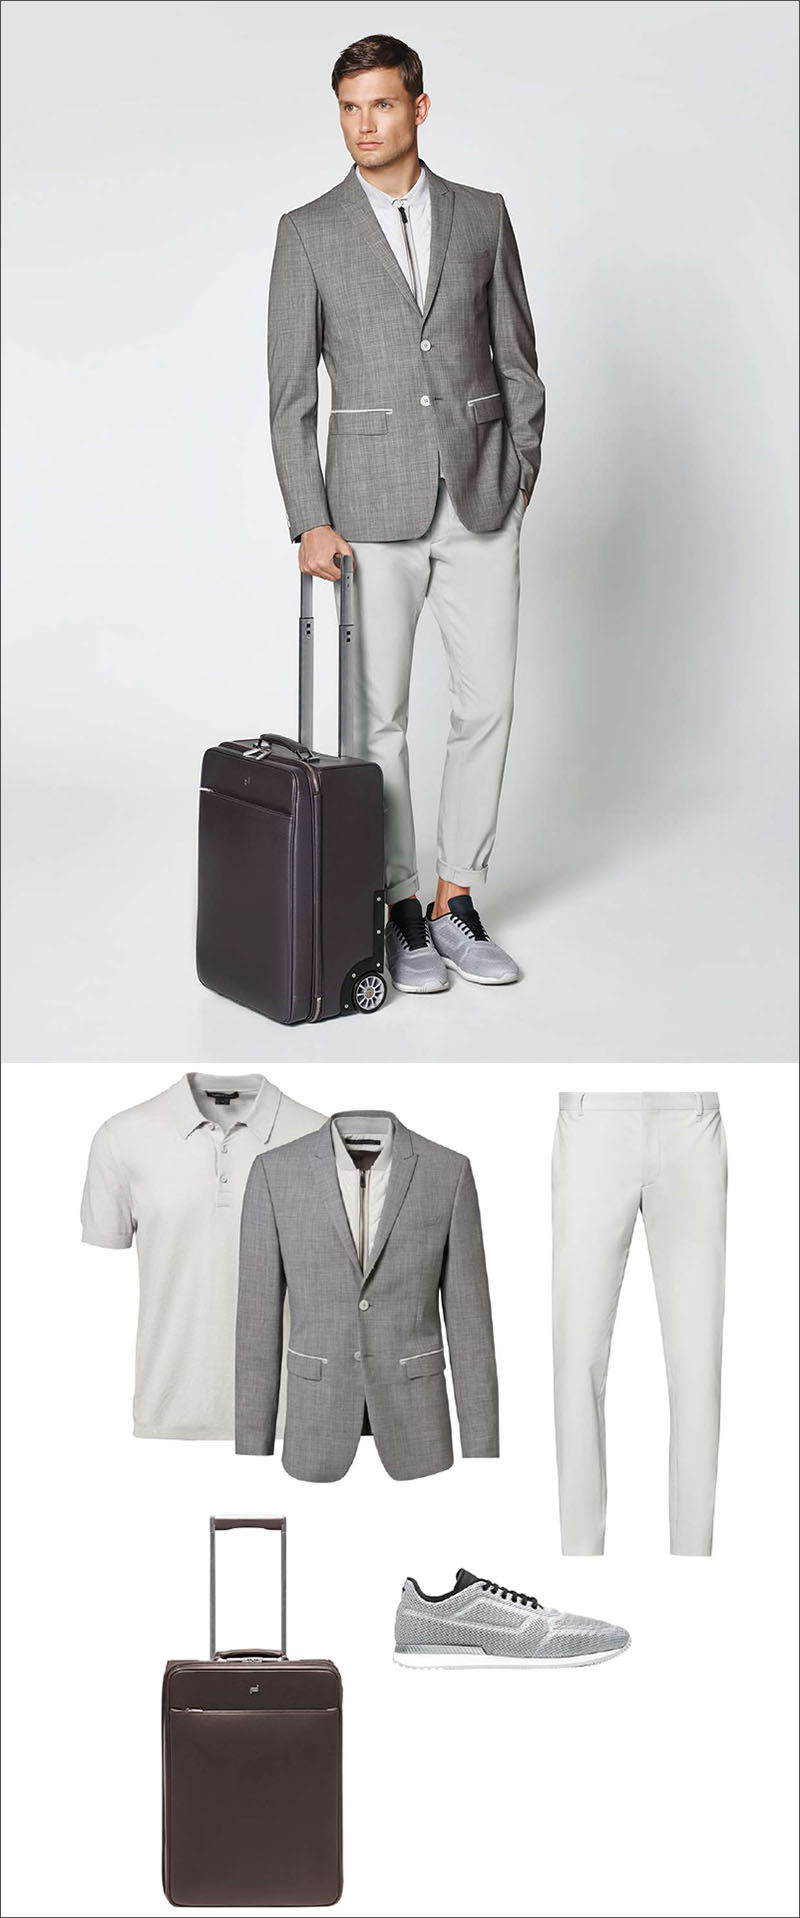 Men's Fashion Ideas - 17 Men's Outfits From Porsche Design's 2017 Spring/Summer Collection | A heather grey men's blazer with a built in removable vest for extra warmth, a pair of casual grey mesh sneakers, a pair of light grey pants, a polo shirt also in light grey, and a dark brown suitcase are the simple pieces that make up this men's outfit.